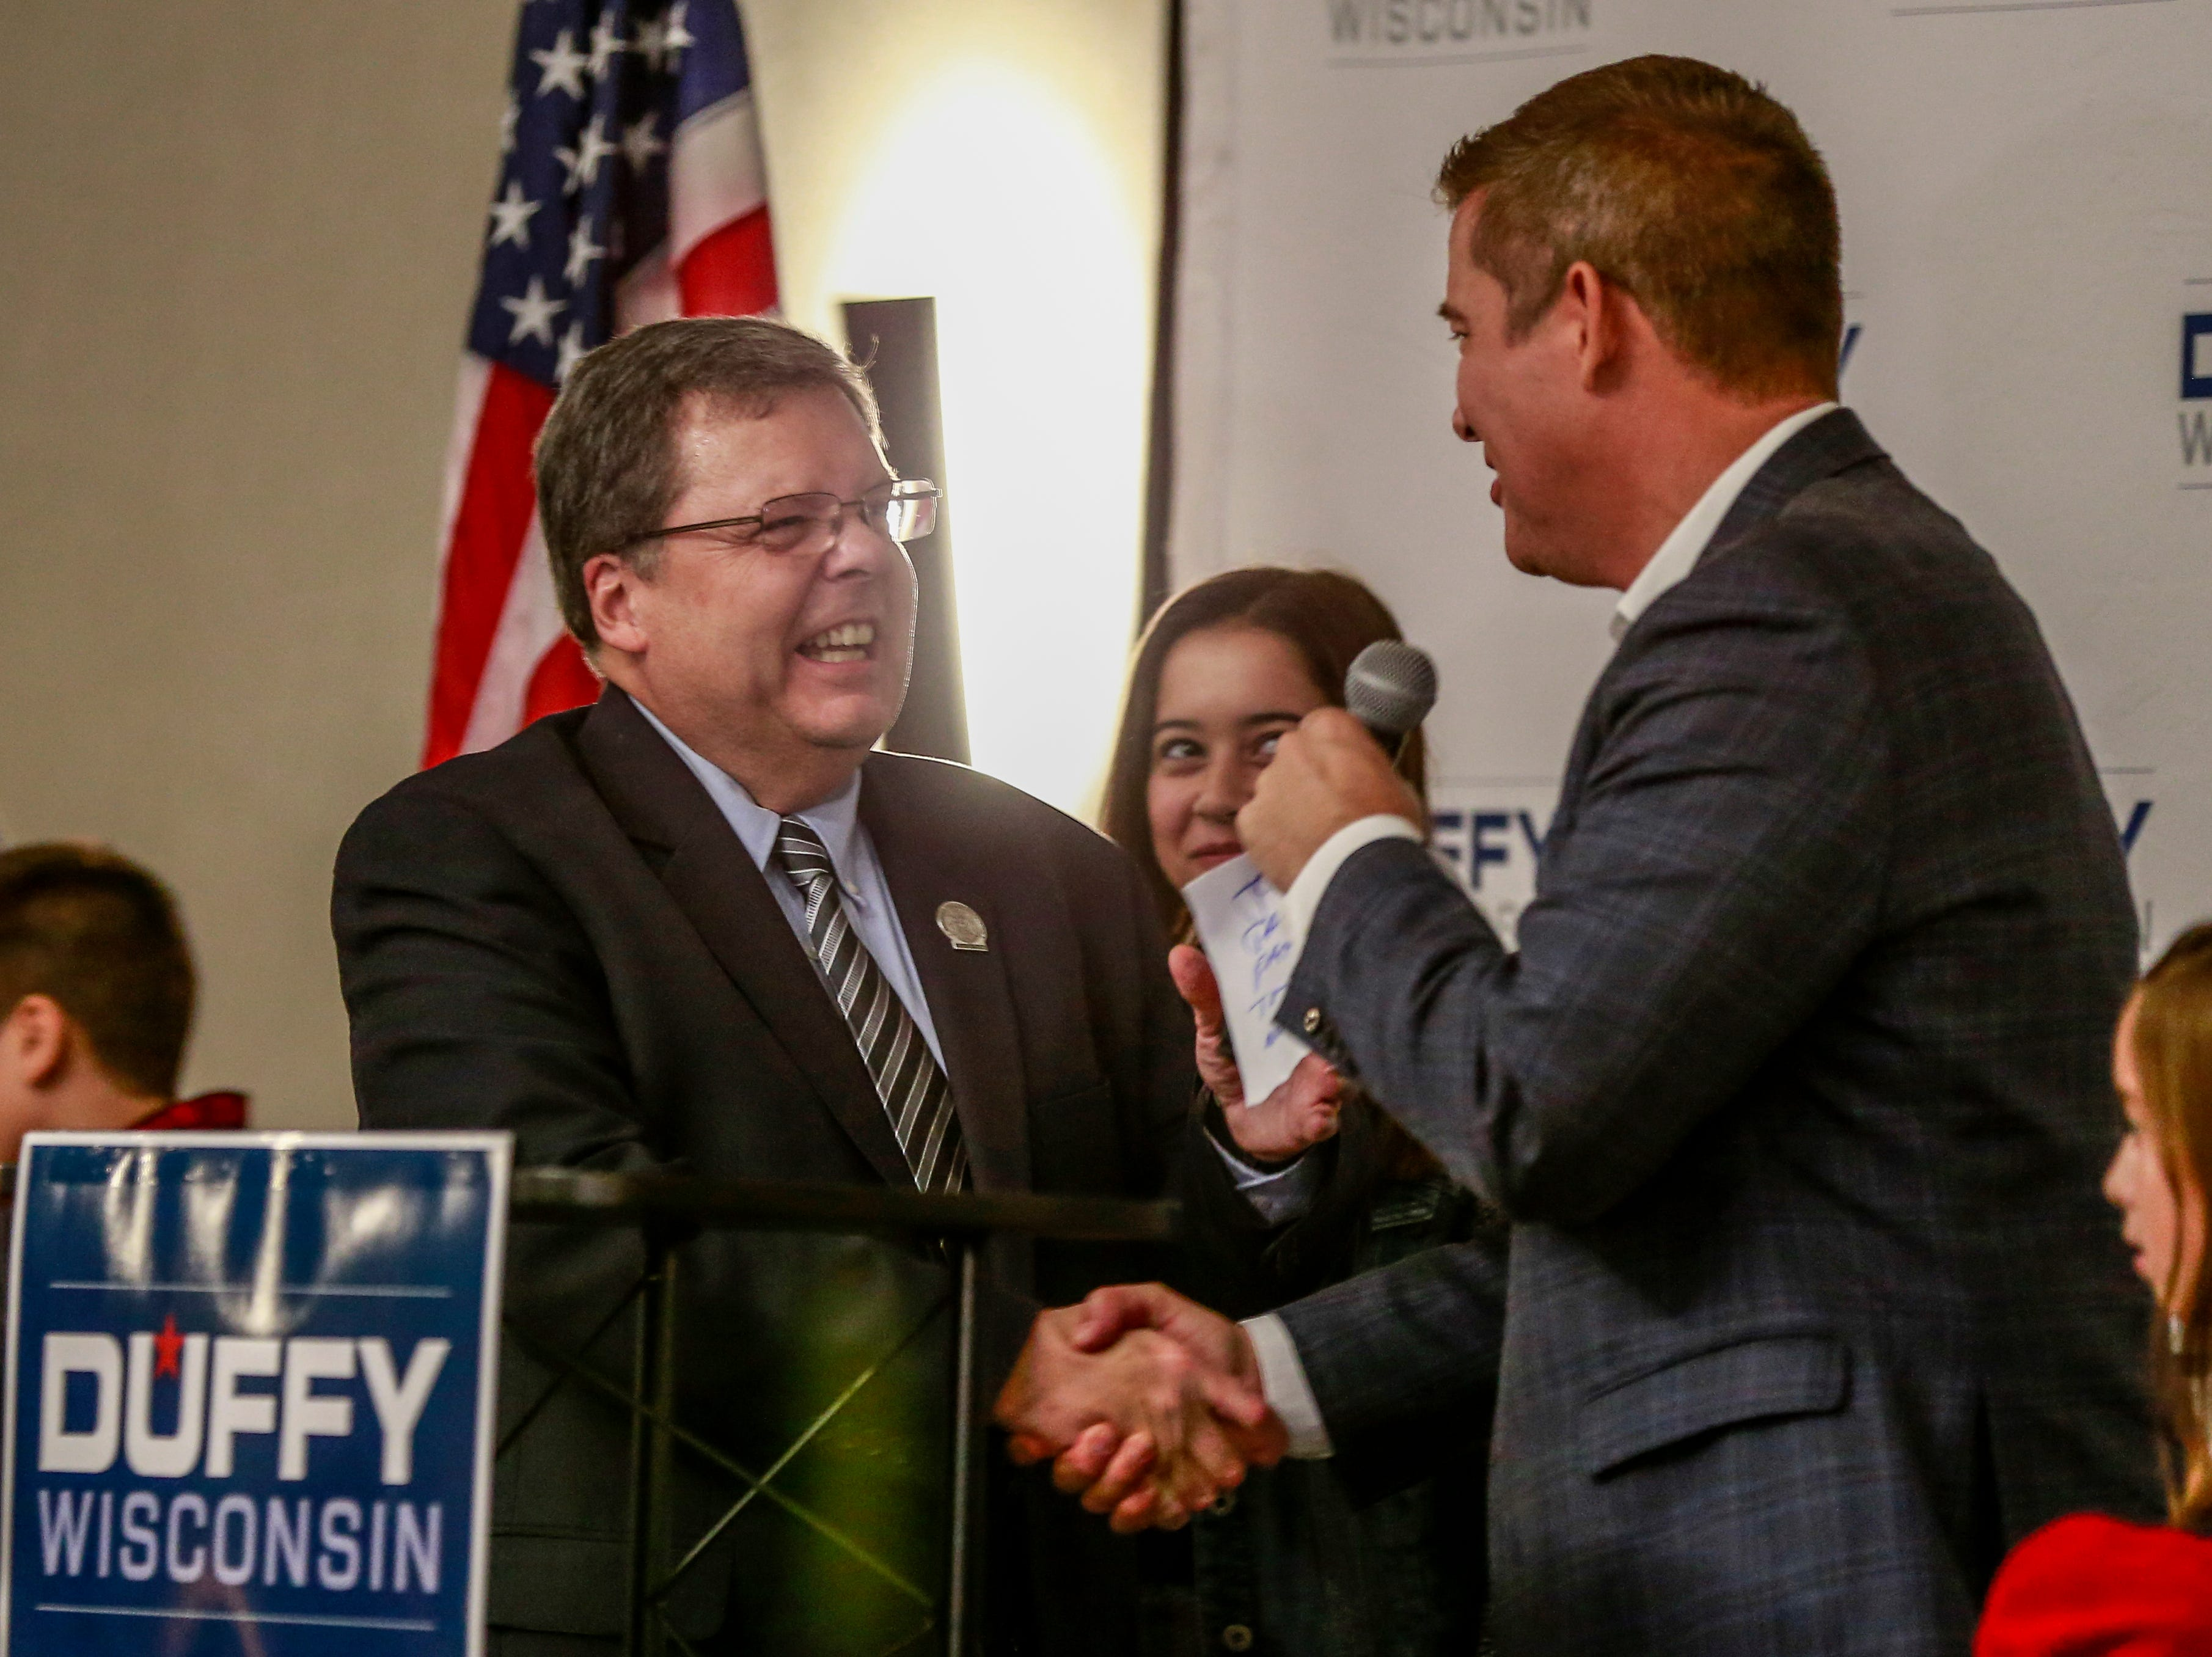 Republicans 85th Assembly District Patrick Snyder, left, and Congressman Sean Duffy celebrate as they maintain their seats in another term Tuesday, Nov. 7, 2018, at Hilton Garden Inn in Wausau, Wis. T'xer Zhon Kha/USA TODAY NETWORK-Wisconsin